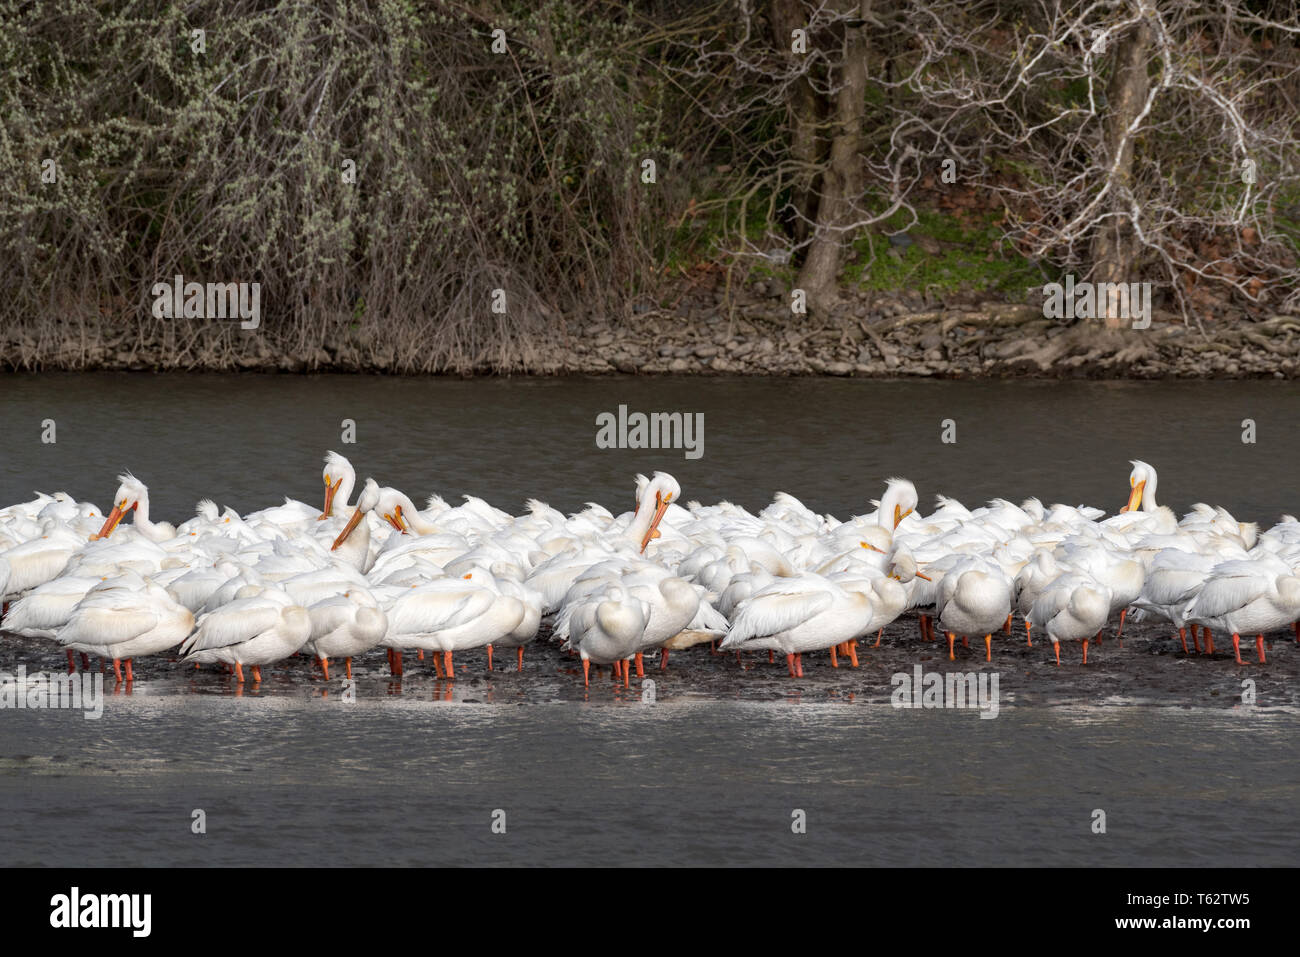 American white pelicans, Pelecanus erythrorhynchos, on the Snake River in Southeastern Washington. Stock Photo